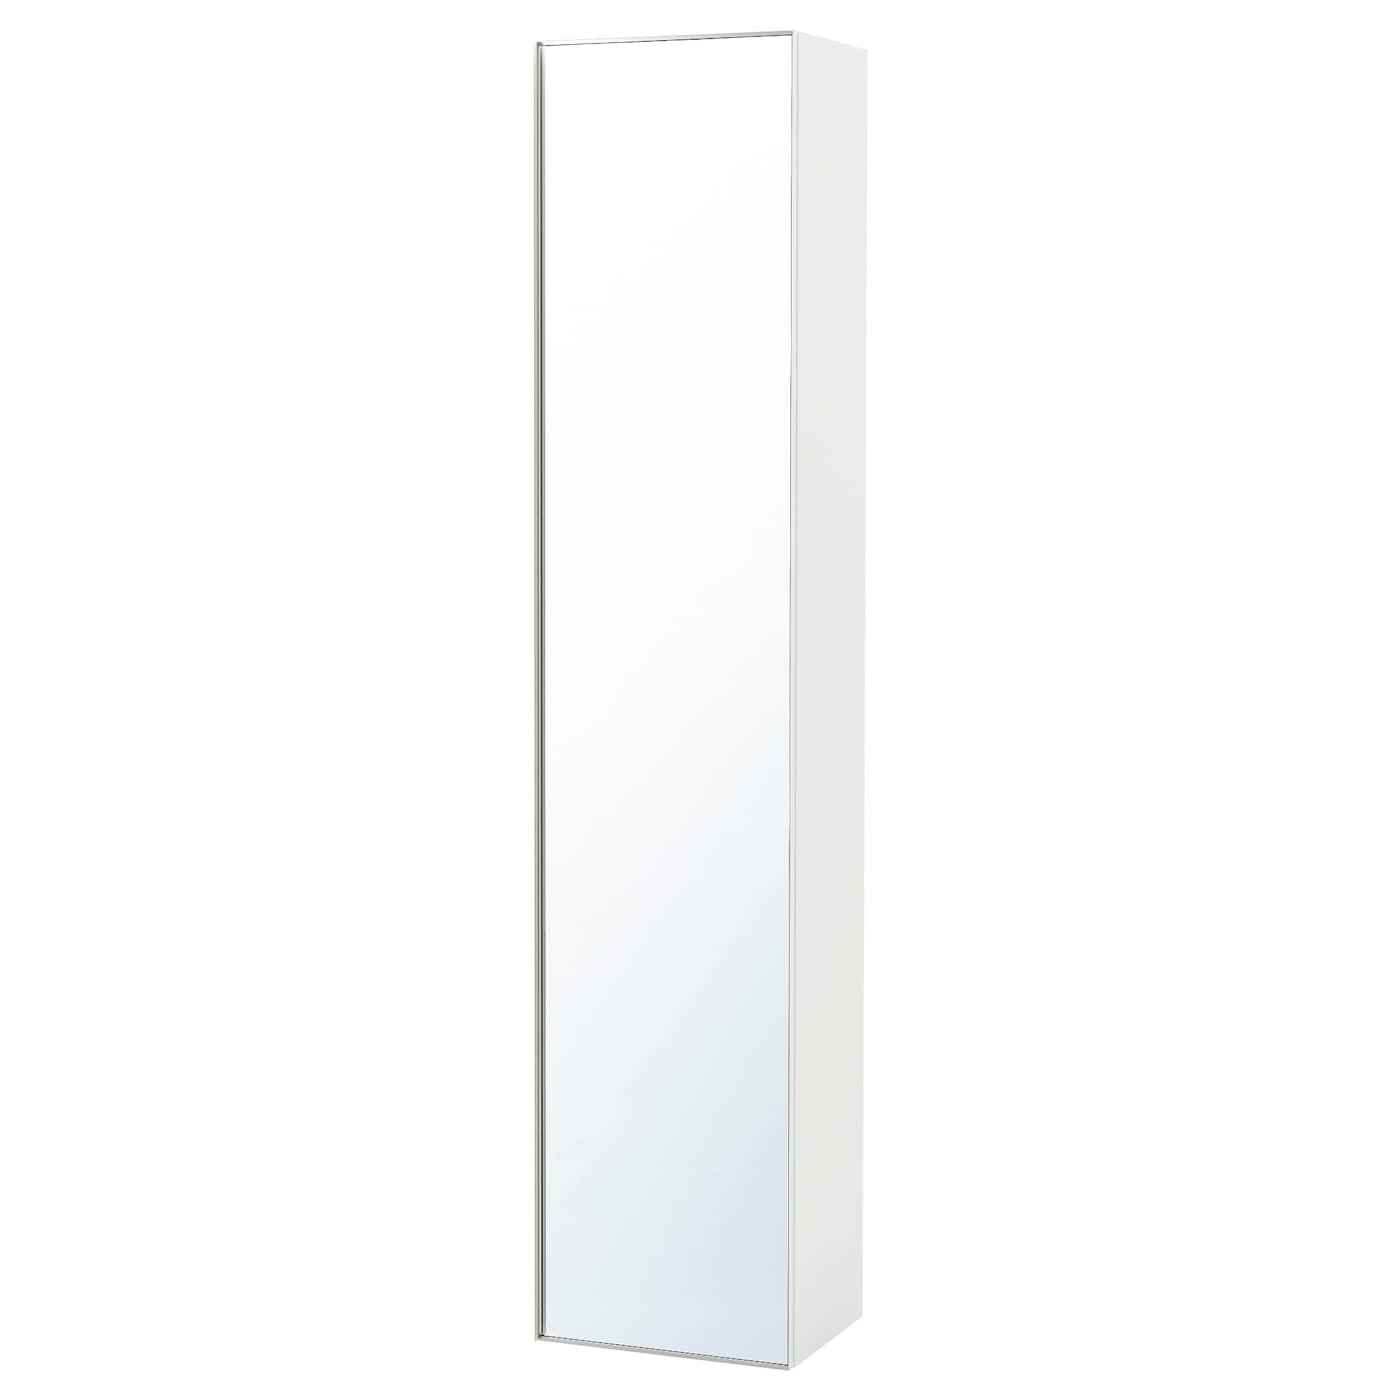 GODMORGON High cabinet with mirror door High gloss white